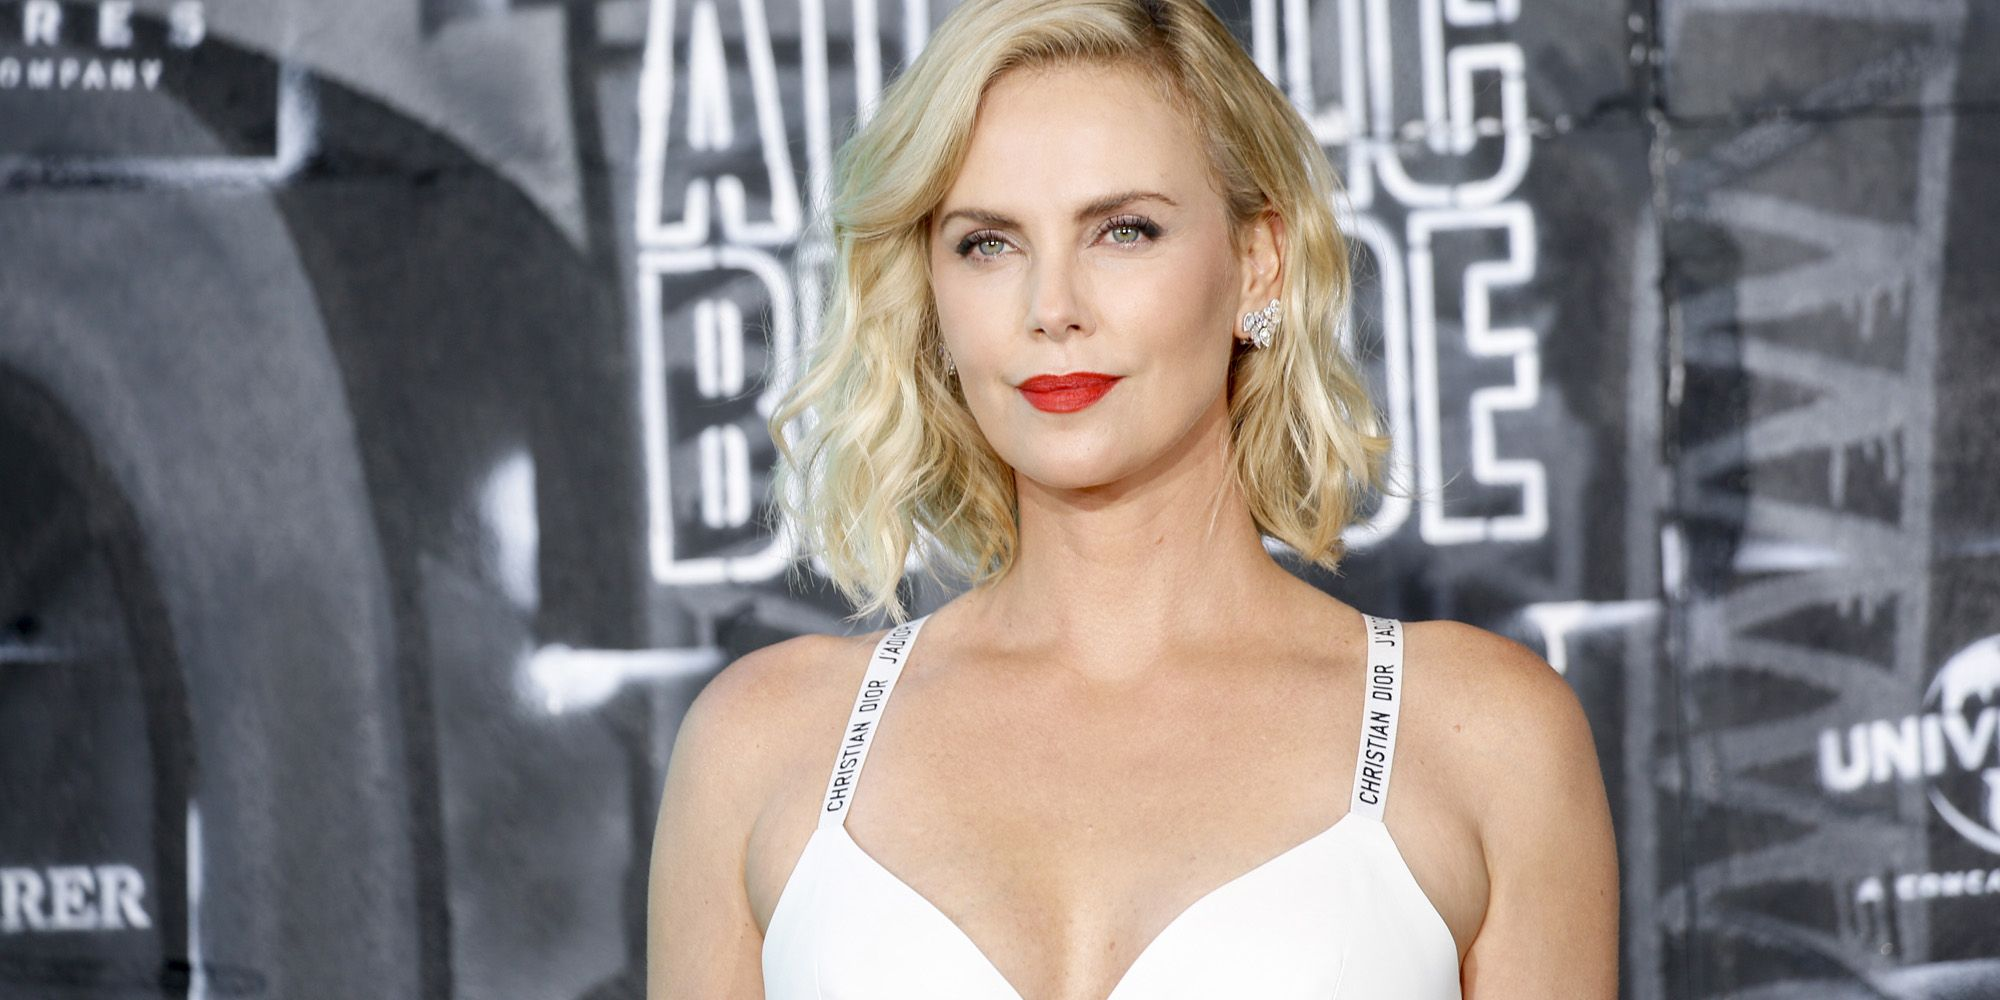 Charlize Theron Dior Blend Charity With Luxury